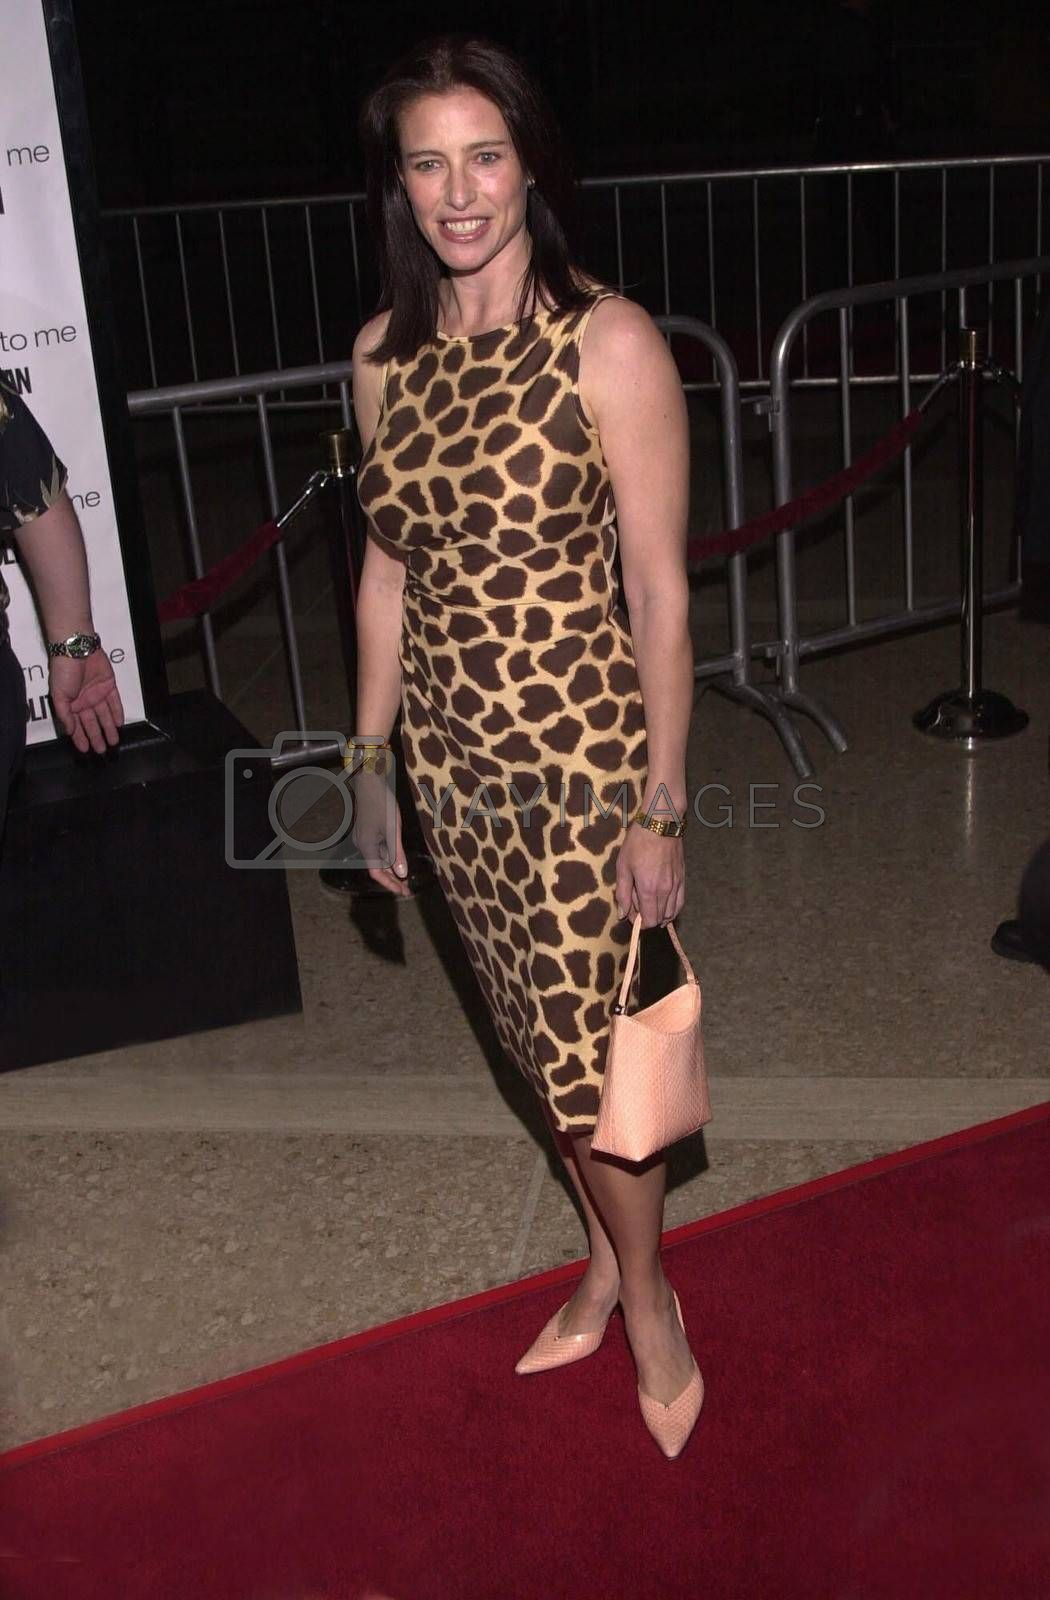 """Mimi Rogers at the premiere of MGM's """"RETURN TO ME"""" in Century City, 04-03-00"""